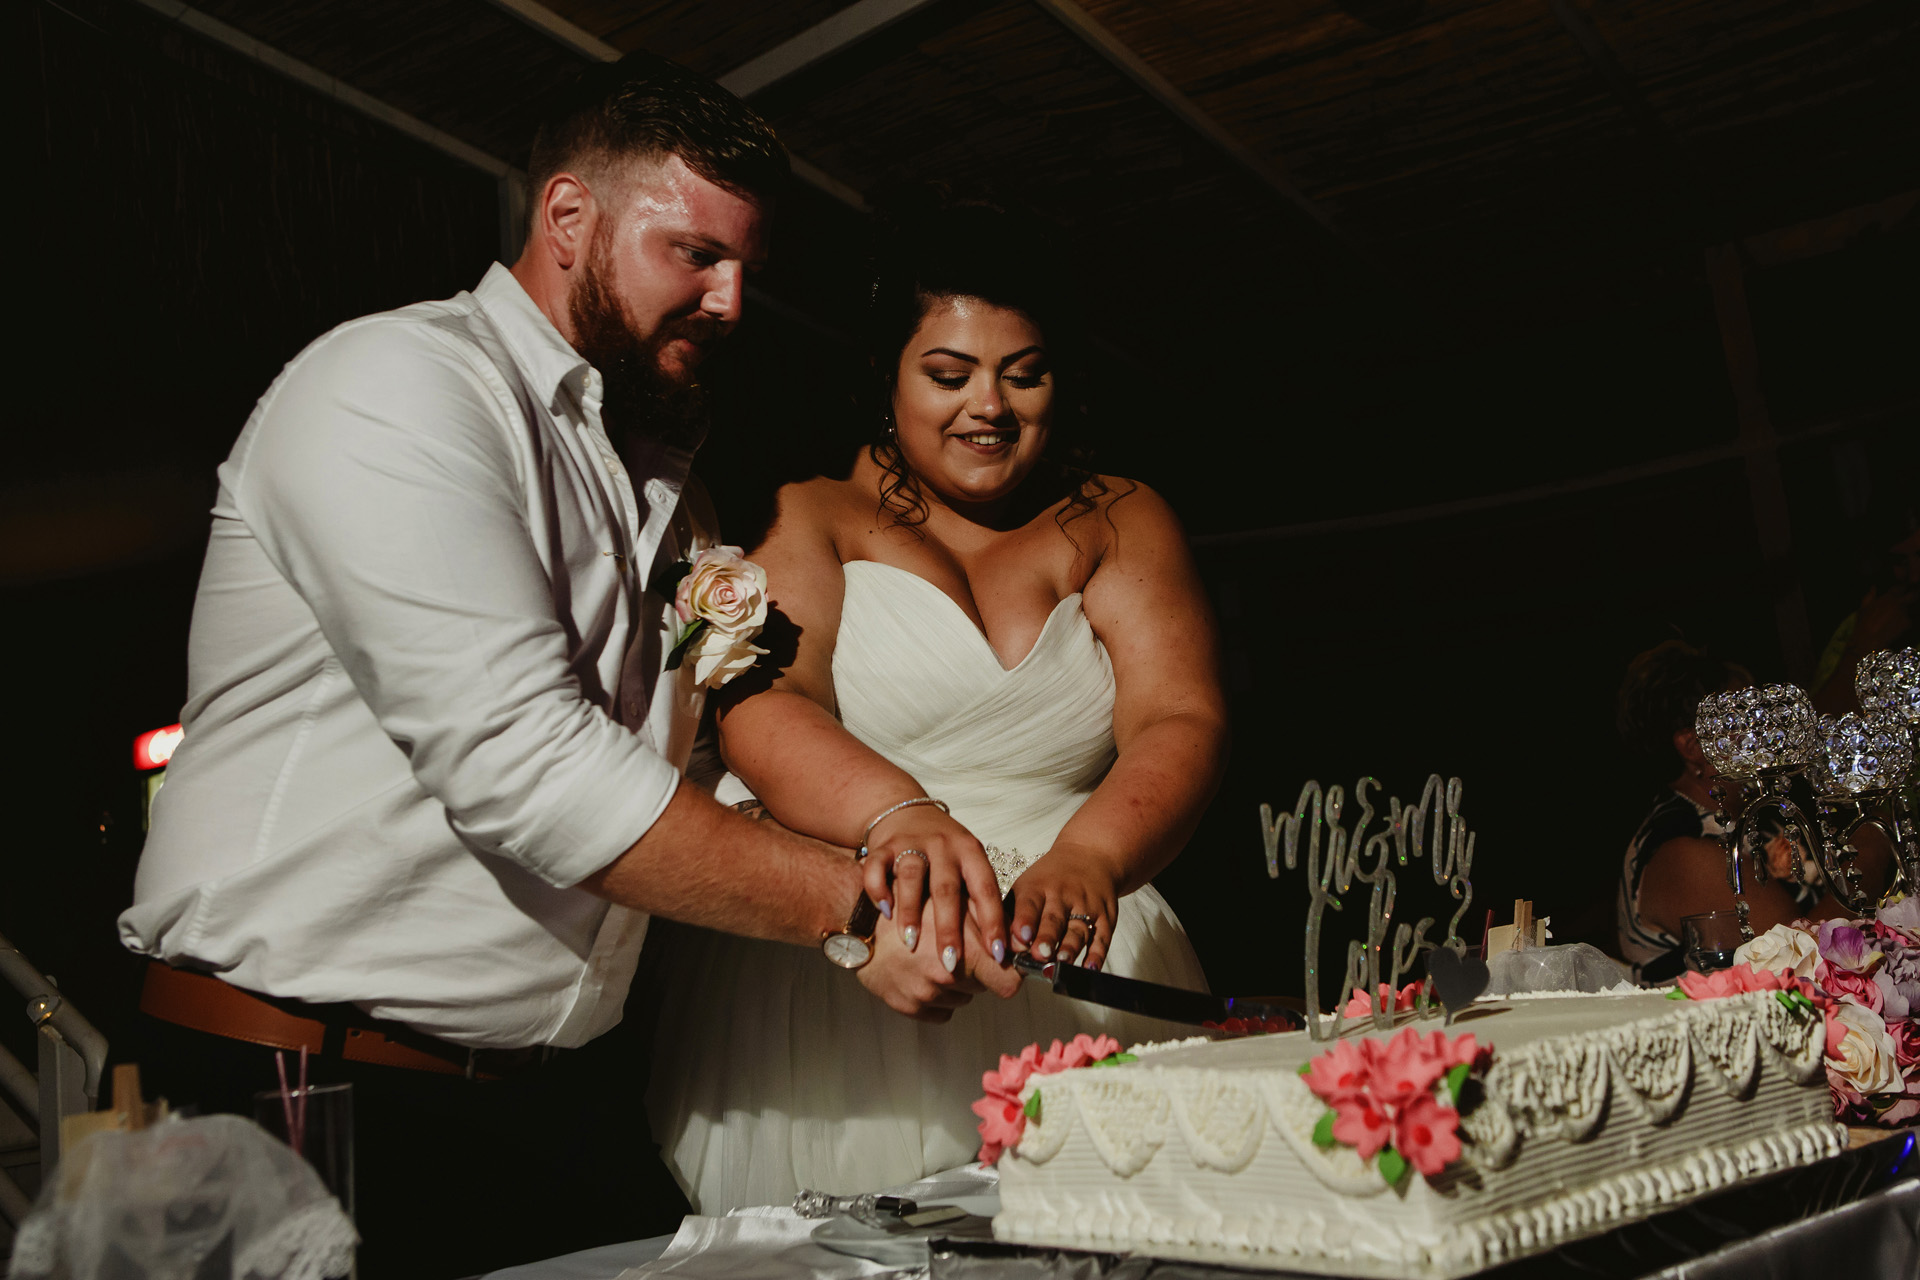 Elopement Photos from Billy's Beach, Fethiye, Mugla, Turkey | cake cutting ceremony was held at the end of the dinner